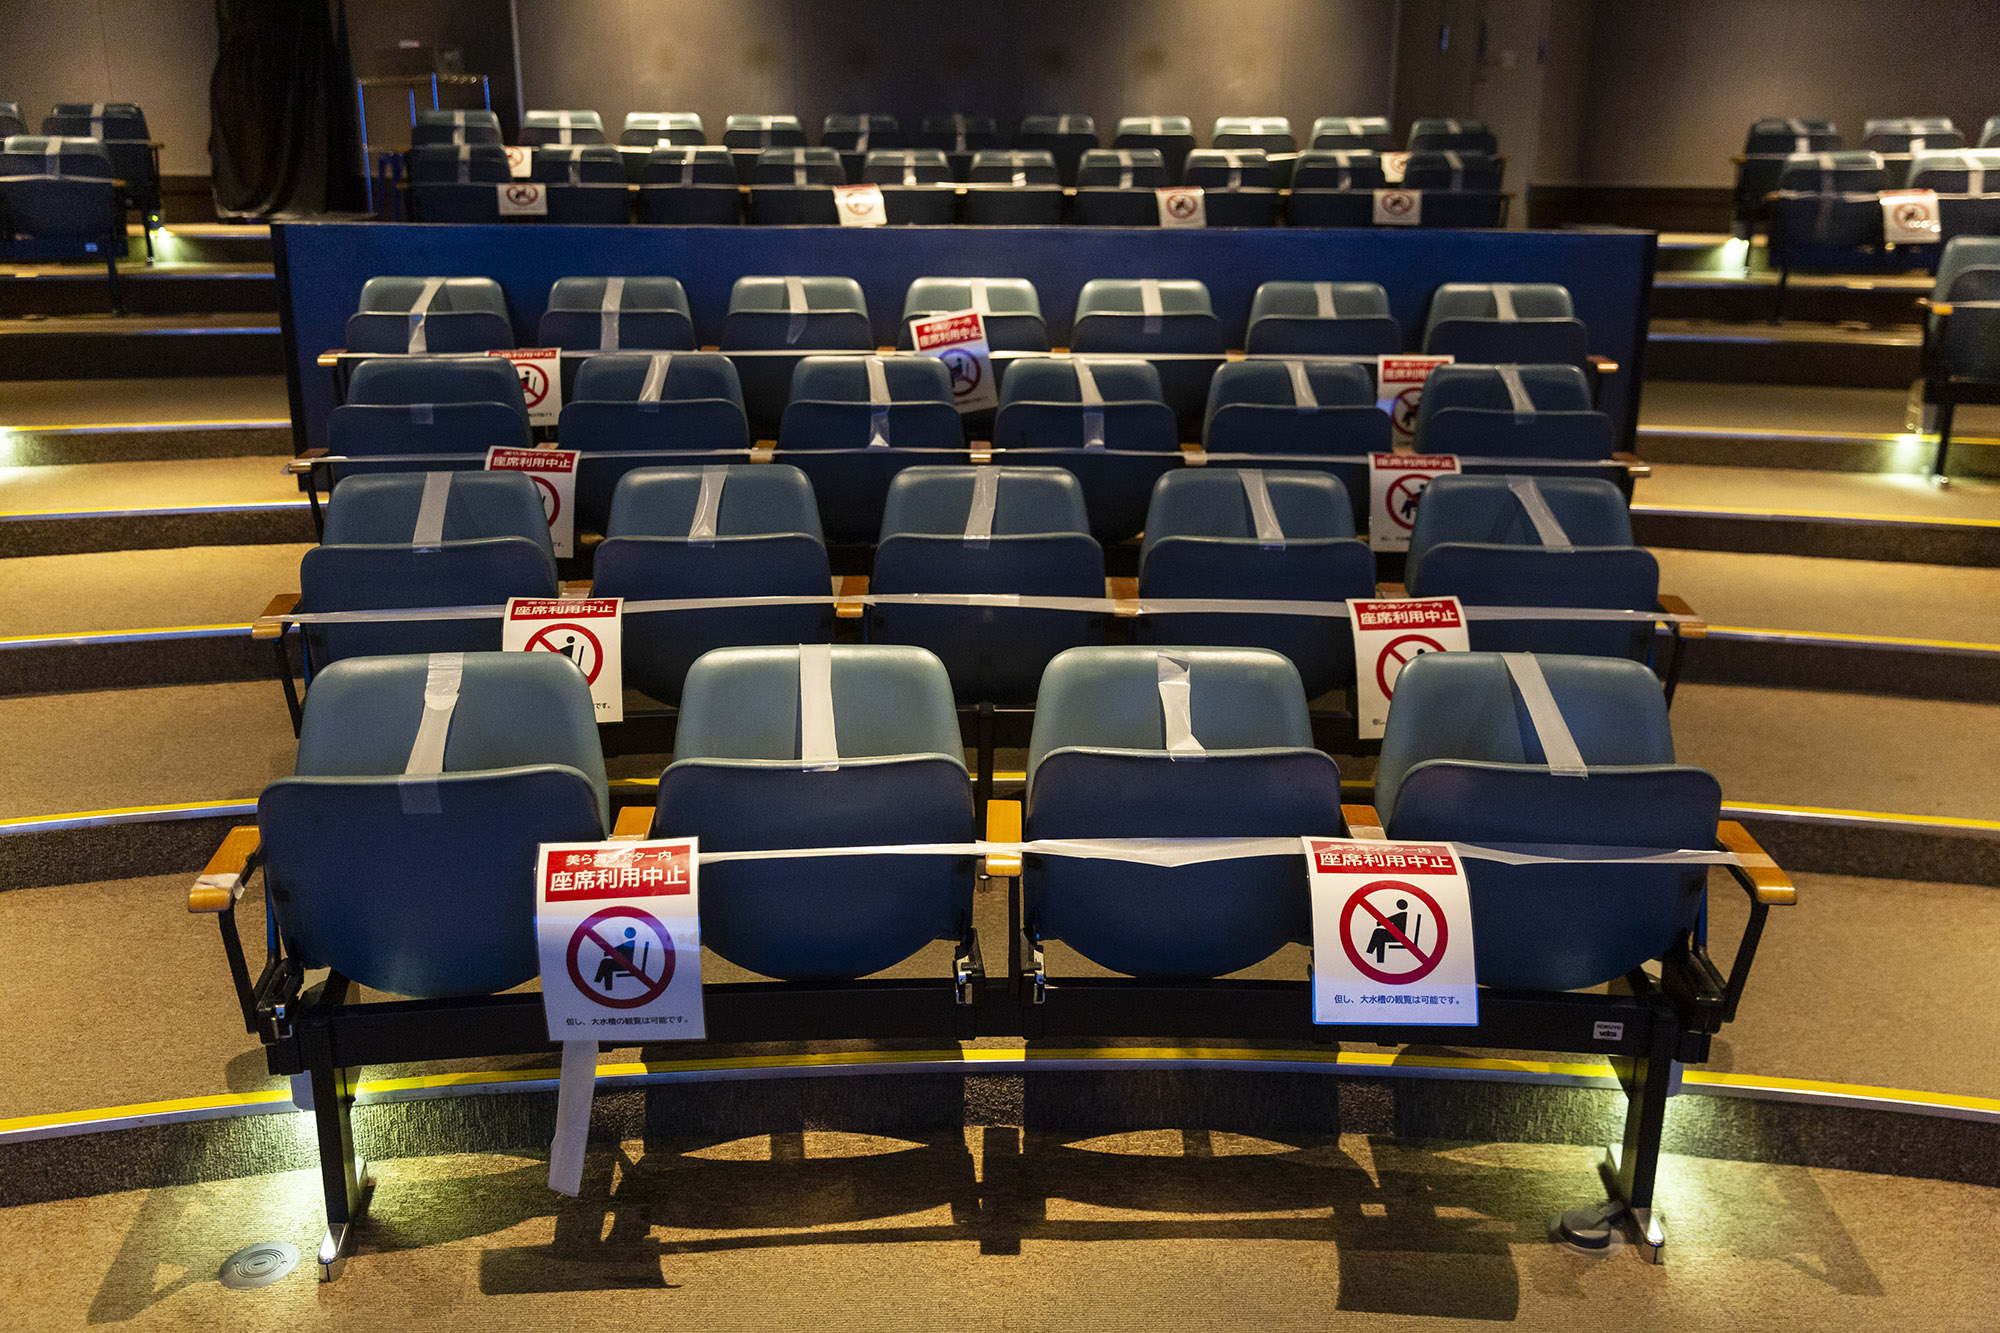 Notices are placed on seats in the Okinawa Churaumi Aquarium requesting that people don't sit down as a measure to protect against spreading coronavirus, on November 28, in Kunigami, Japan.